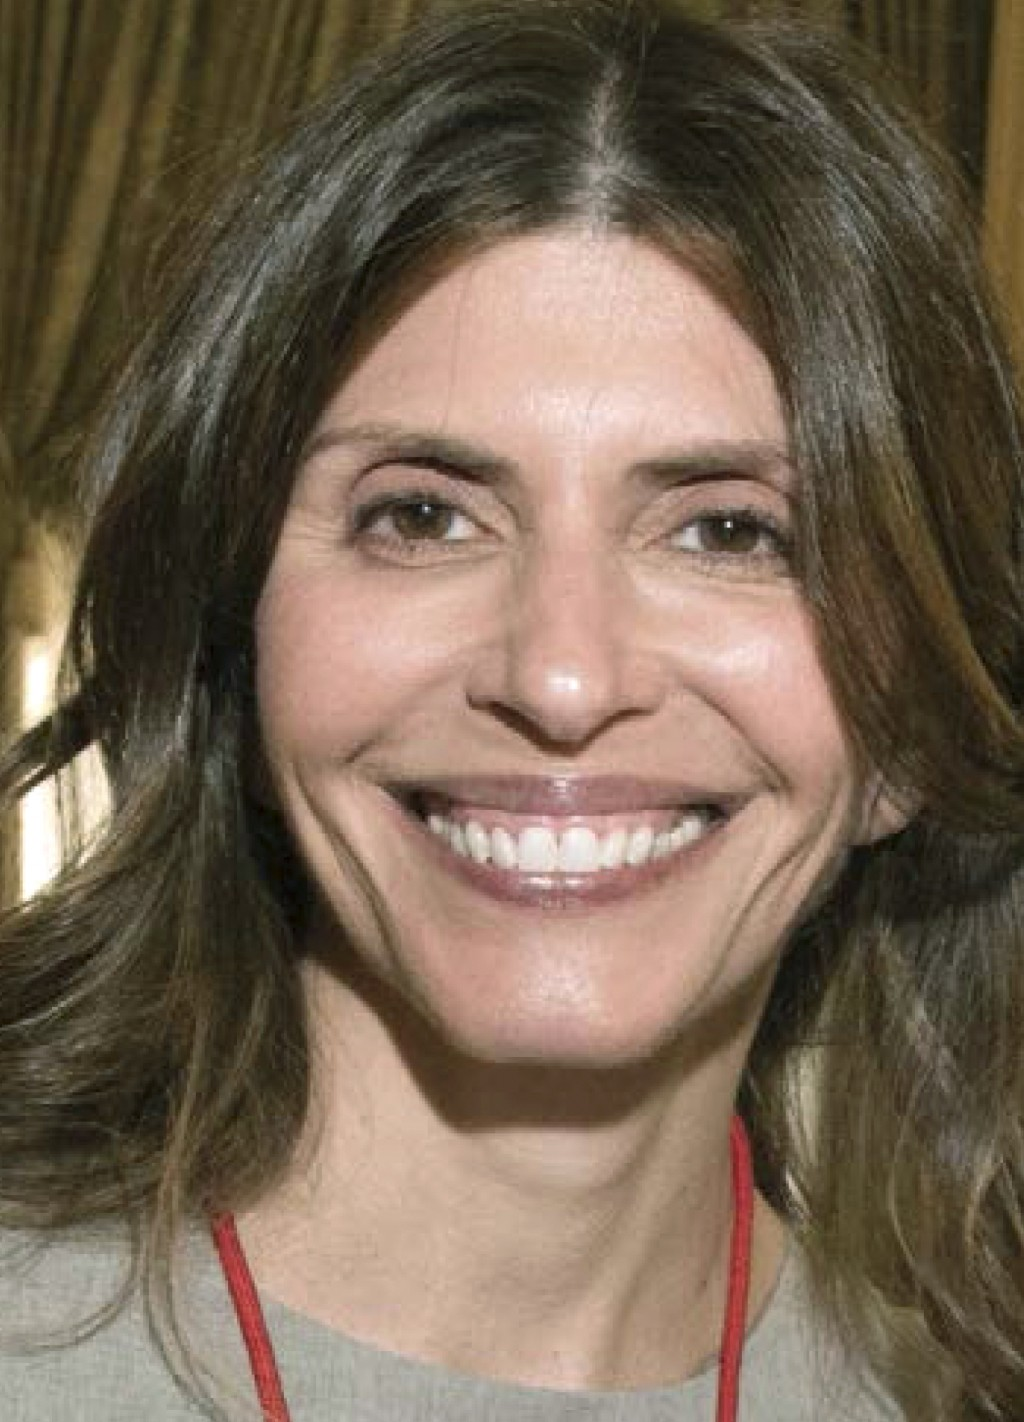 This undated photo released Friday, May 31, 2019, by the New Canaan, Conn., Police Department shows Jennifer Dulos, missing since May 24 when she was